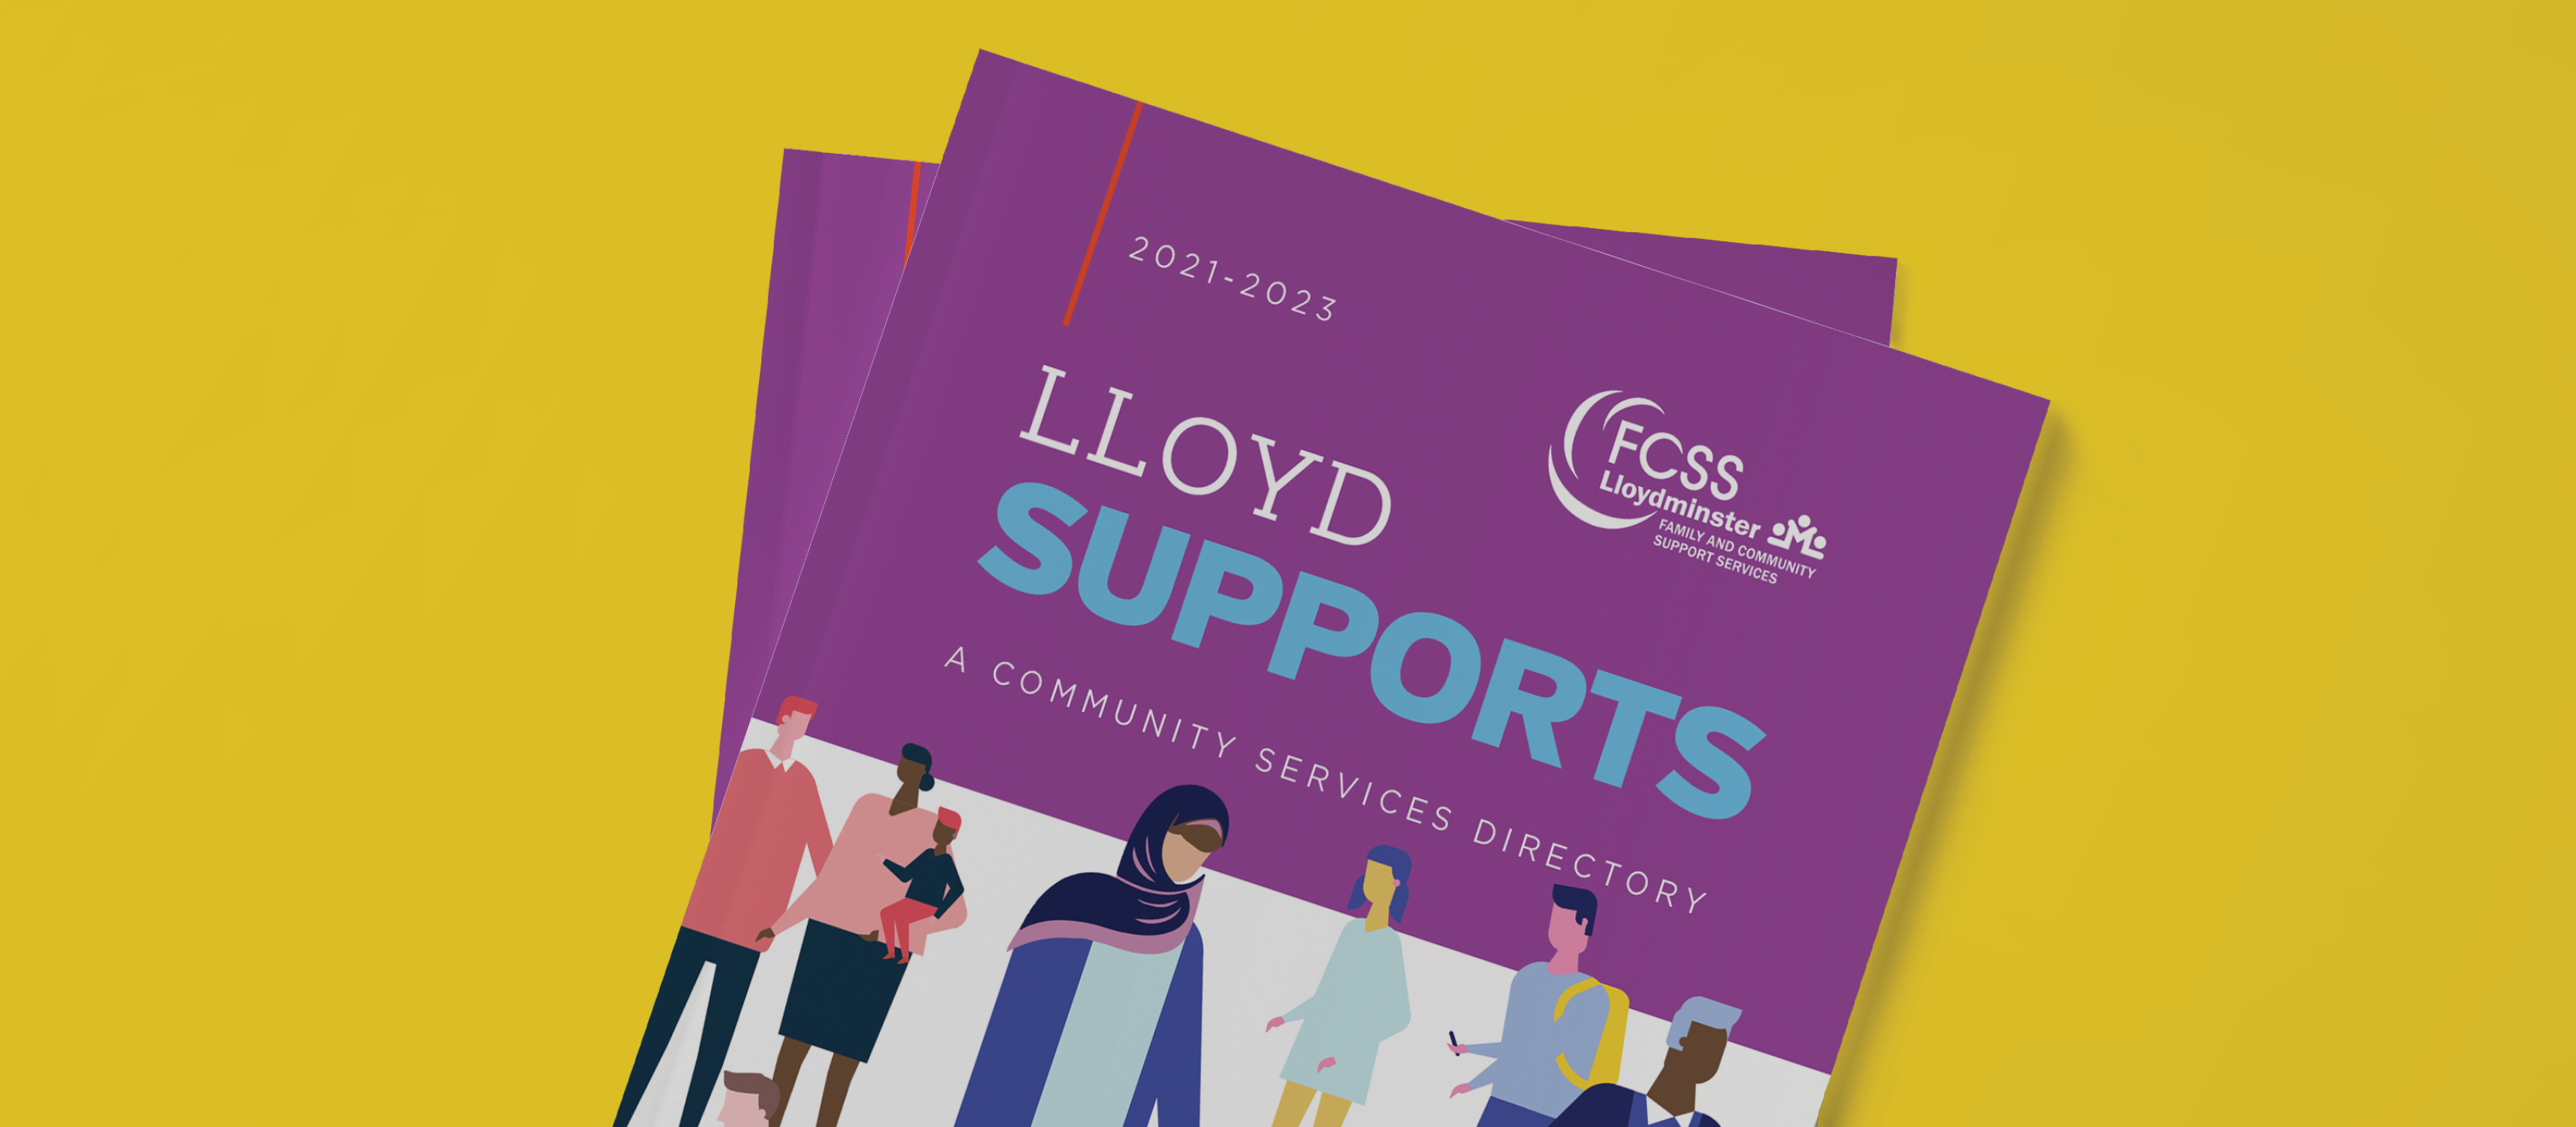 Lloyd Supports: Community Services Directory